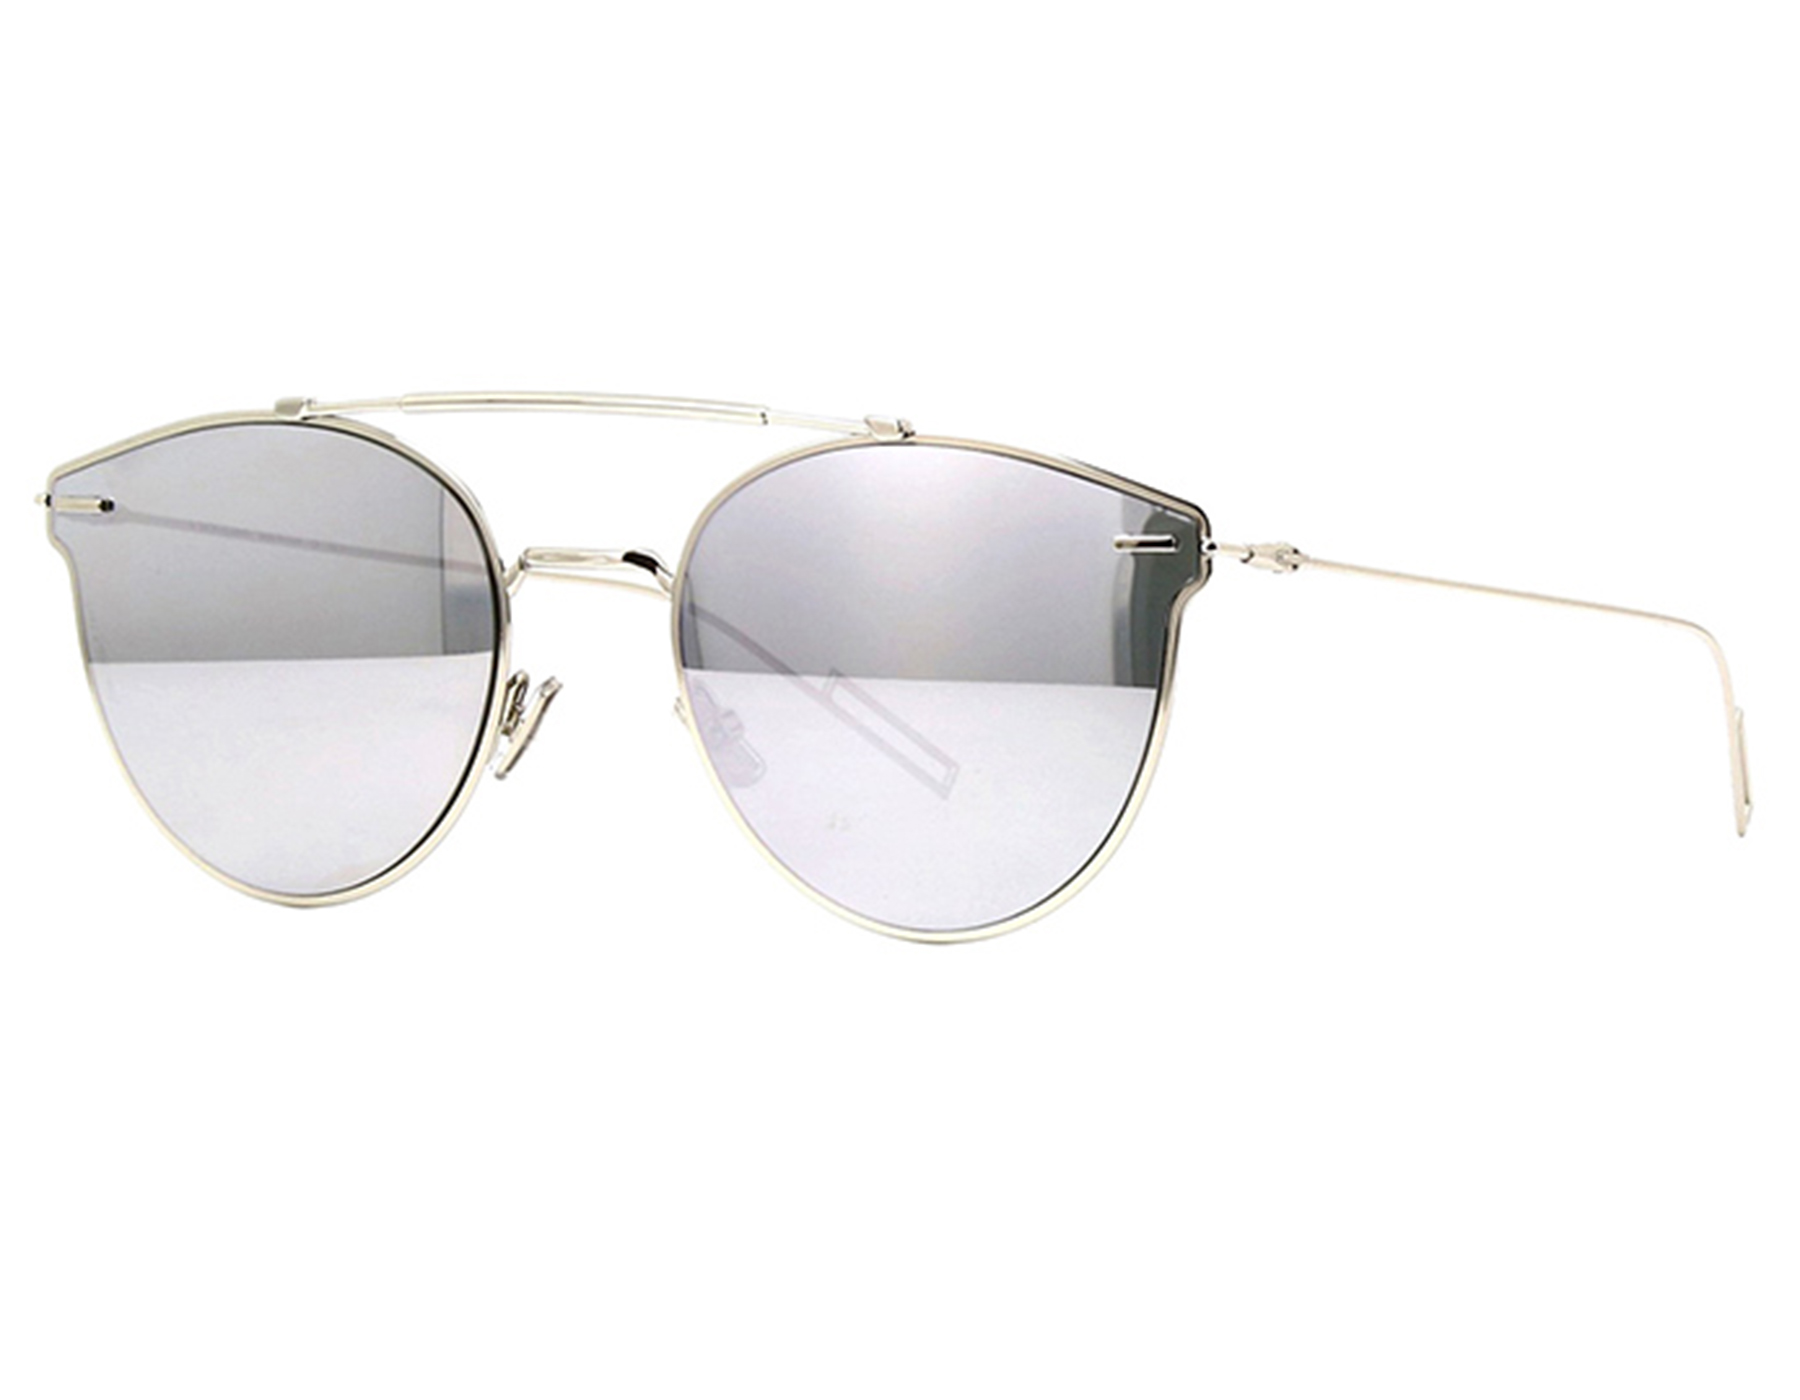 68b30a5c119 Details about NEW Christian Dior PRESSURE-0100T Grey Silver Mirror  Sunglasses